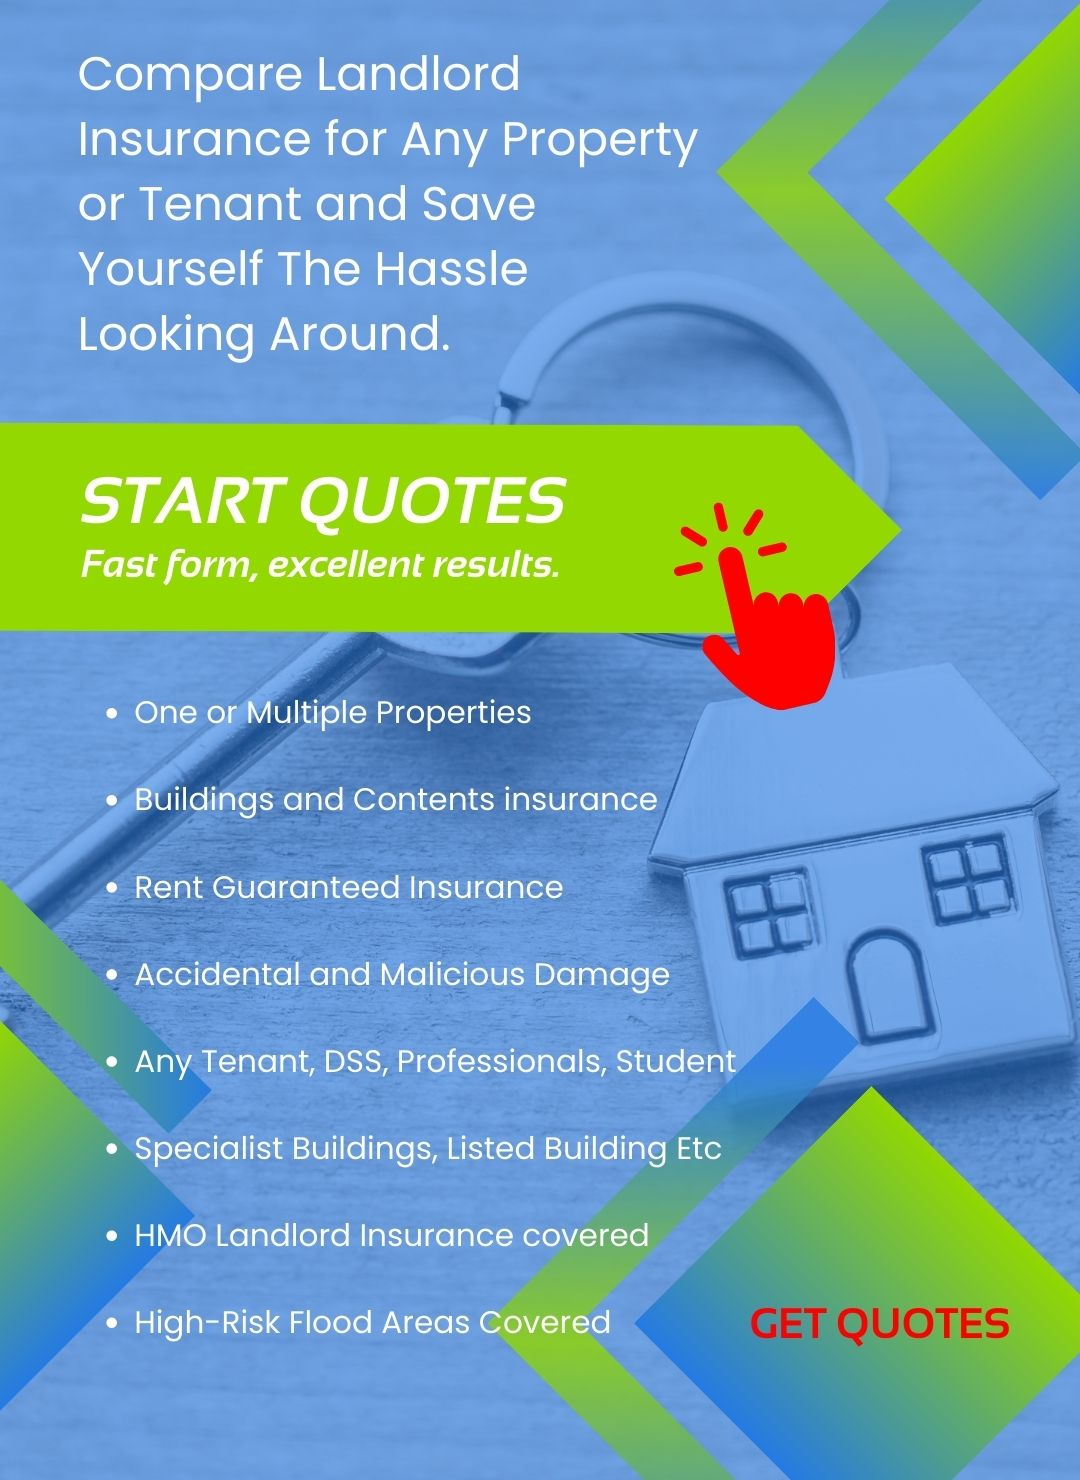 Landlord insurance for flat roof properties